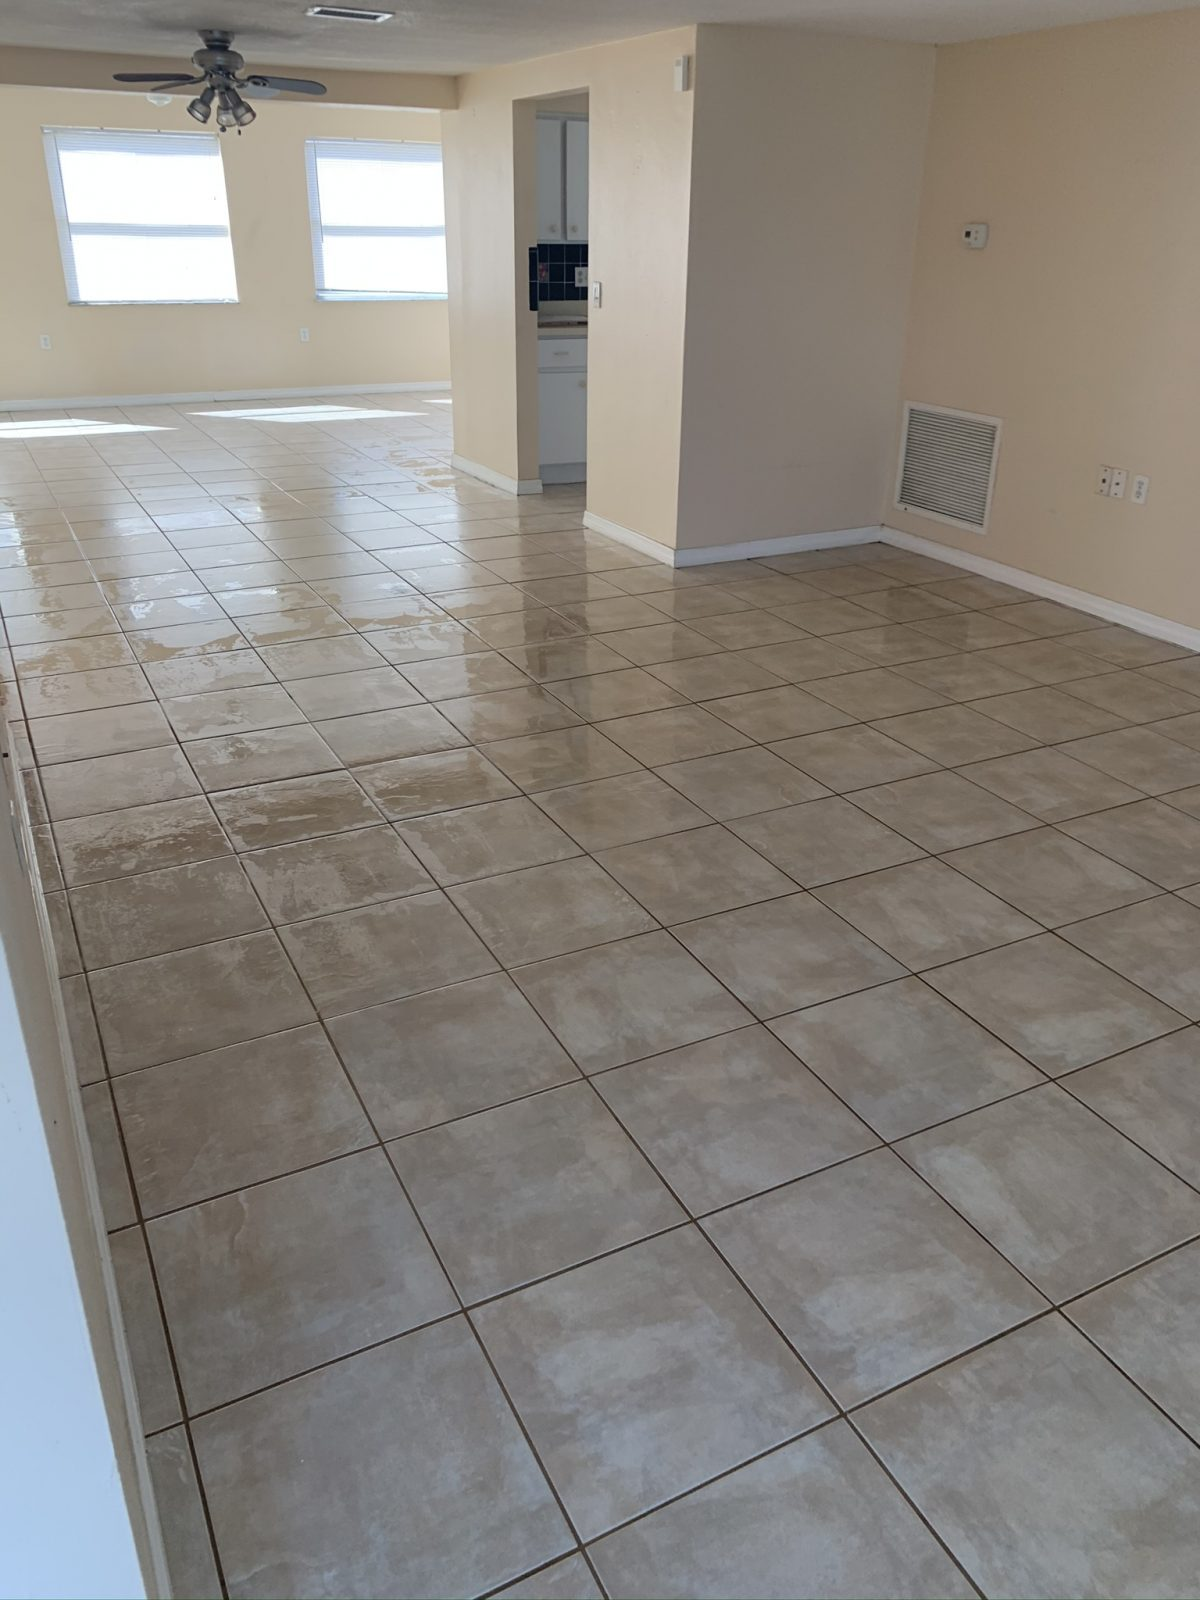 Professional Tile & Grout Cleaning Clearwater Florida by Howards Cleaning Service